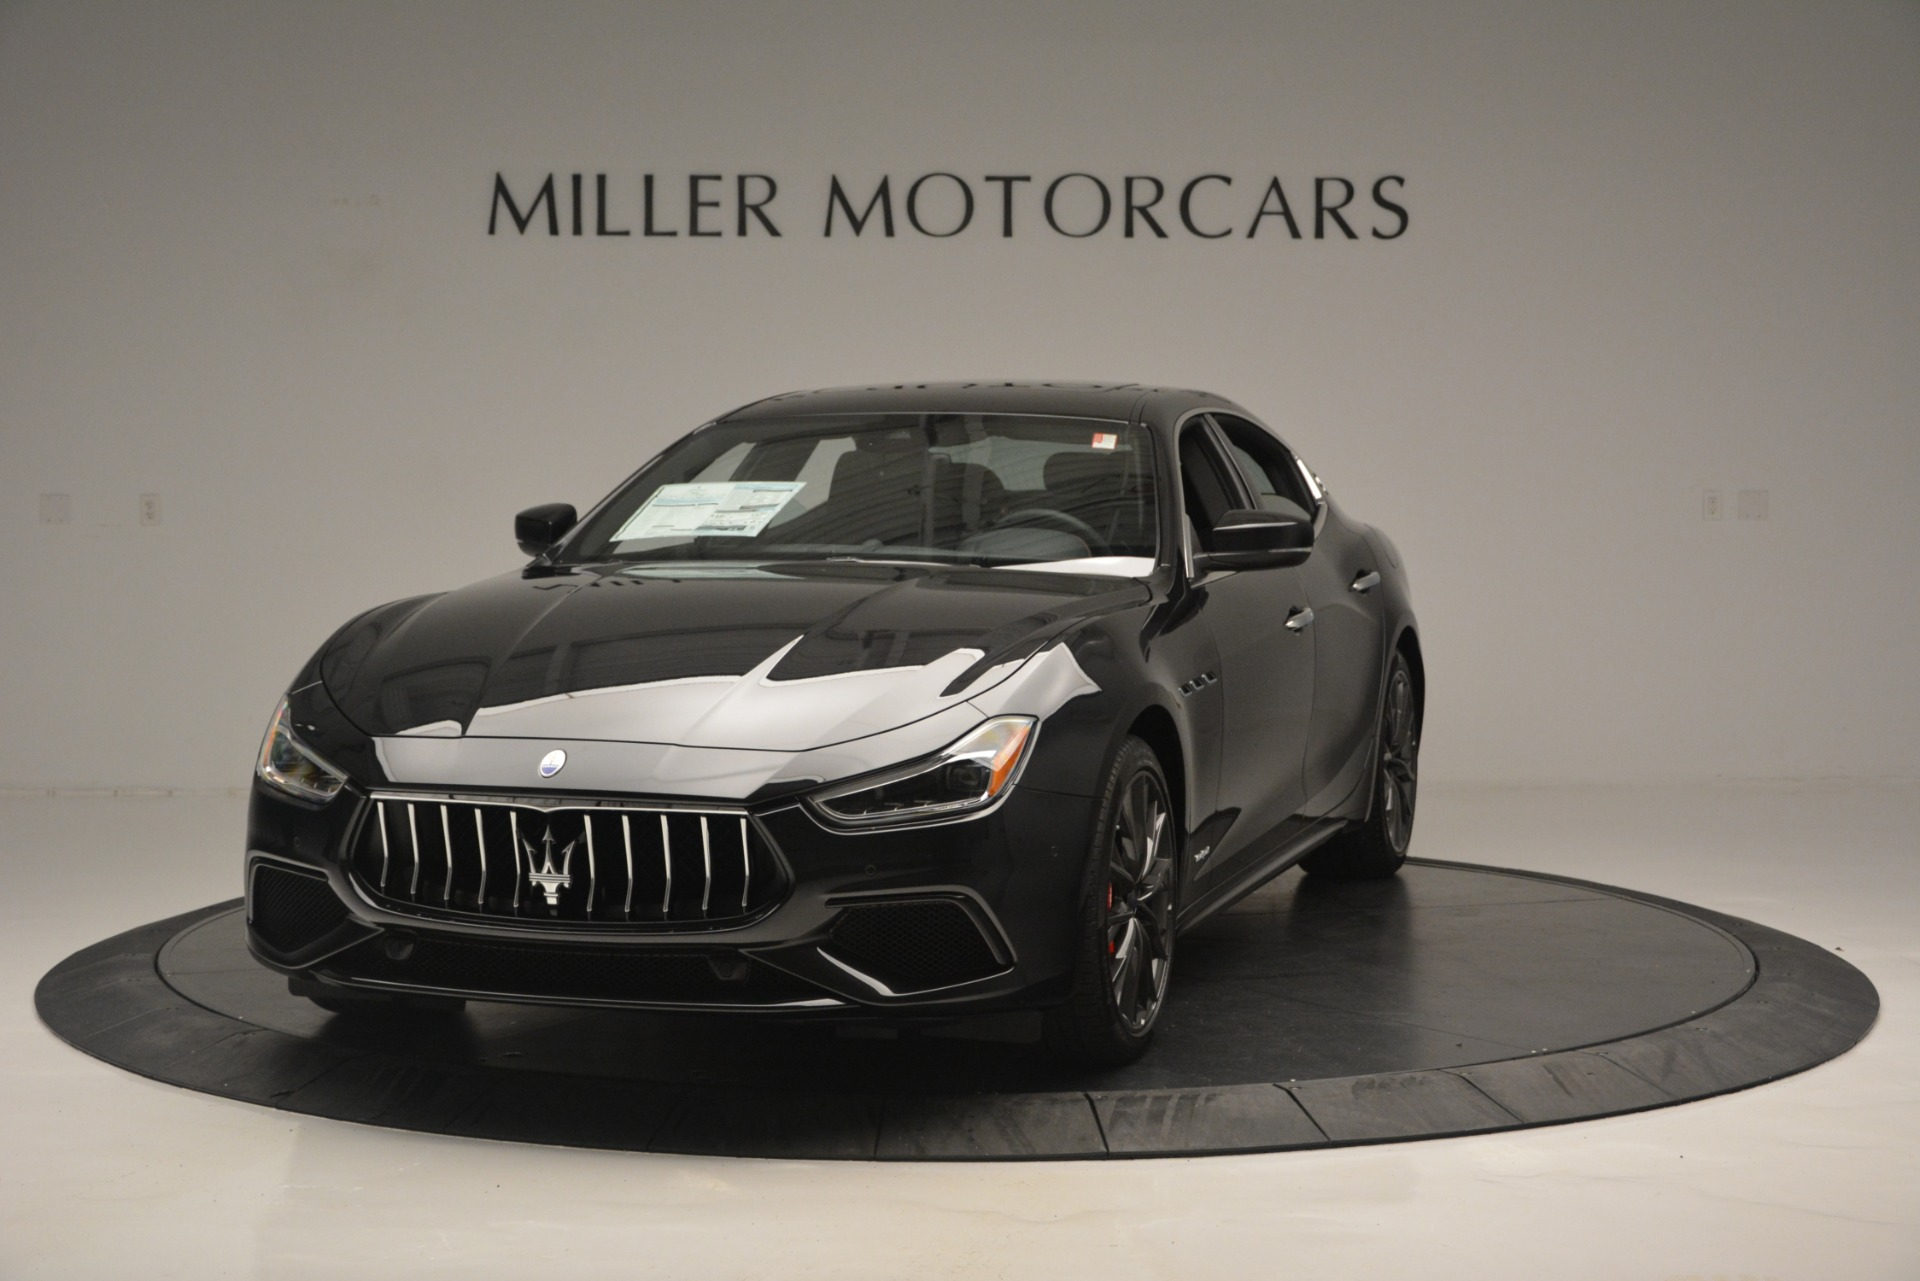 Used 2019 Maserati Ghibli S Q4 GranSport for sale Sold at McLaren Greenwich in Greenwich CT 06830 1